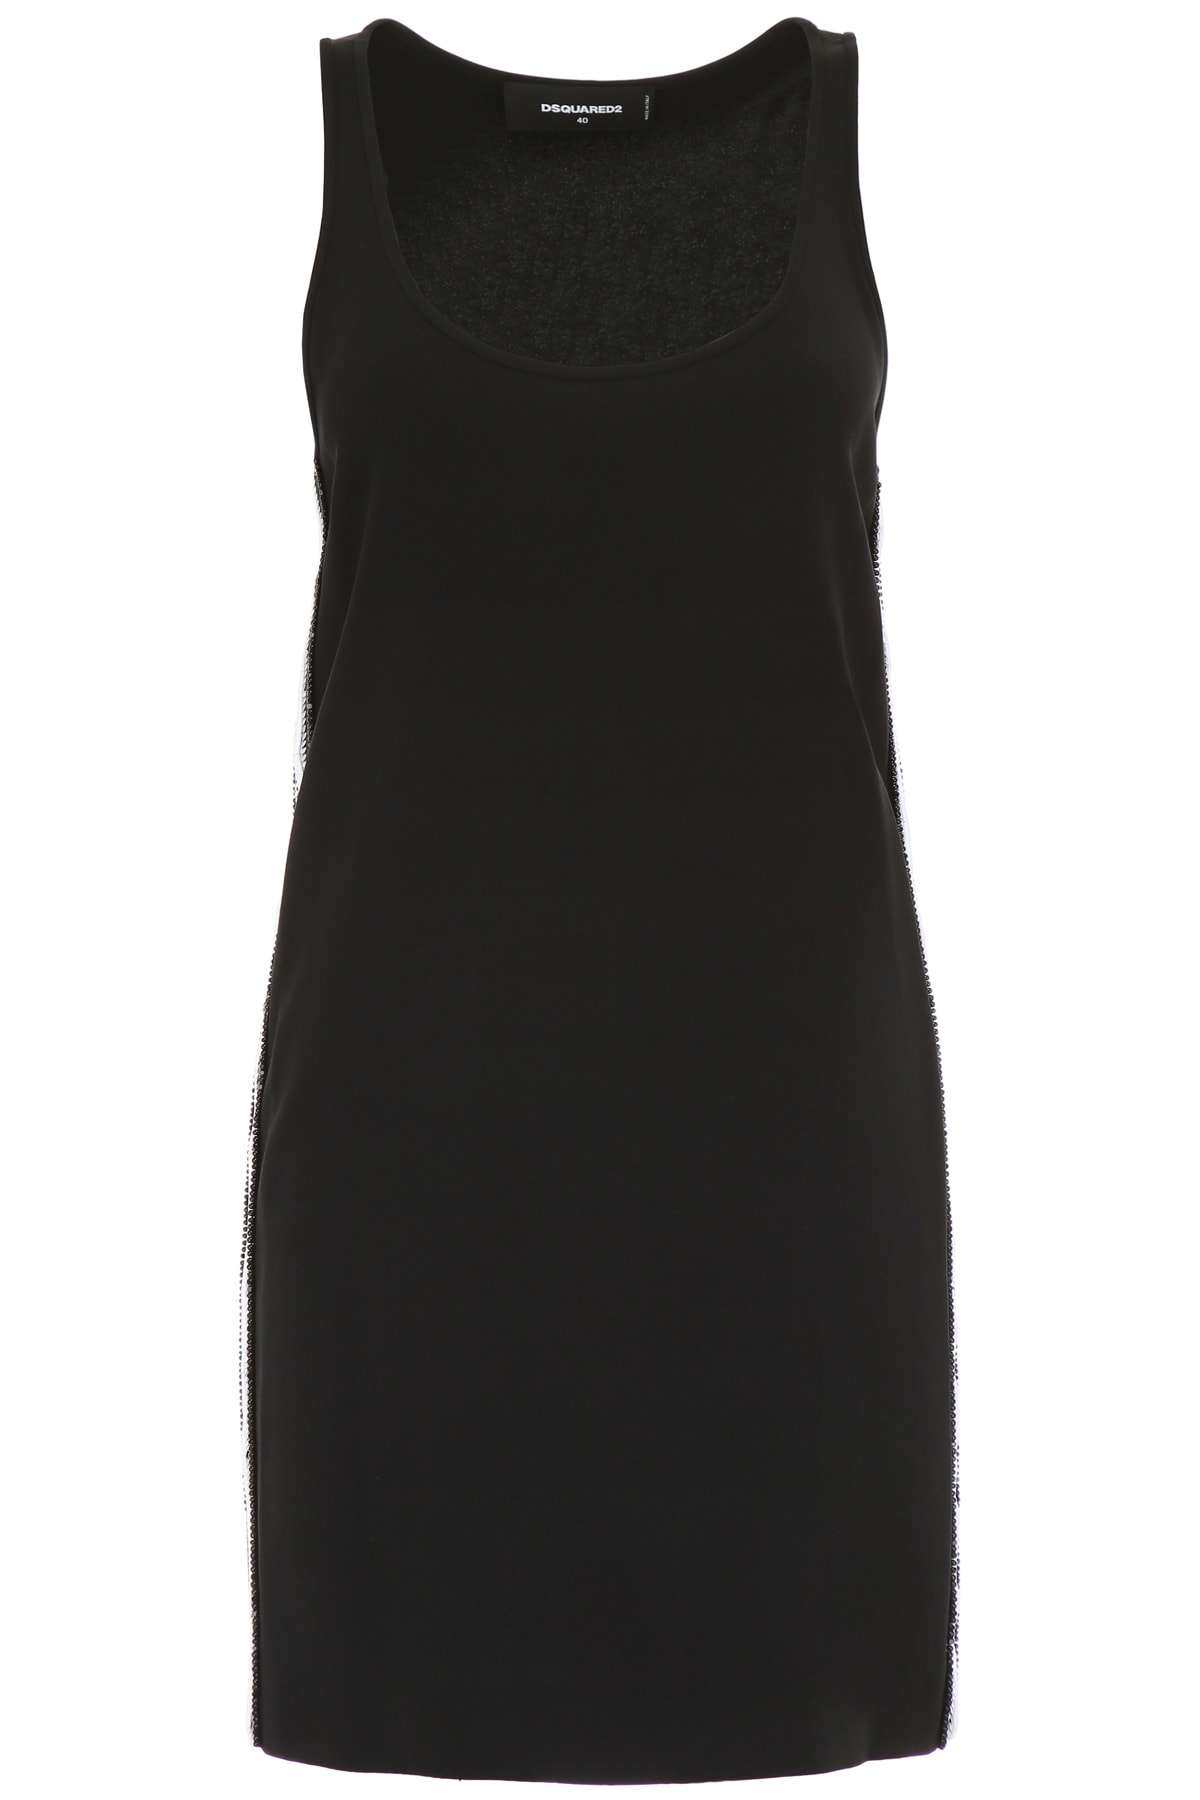 Buy Dsquared2 Disco Sporty Tank Dress online, shop Dsquared2 with free shipping